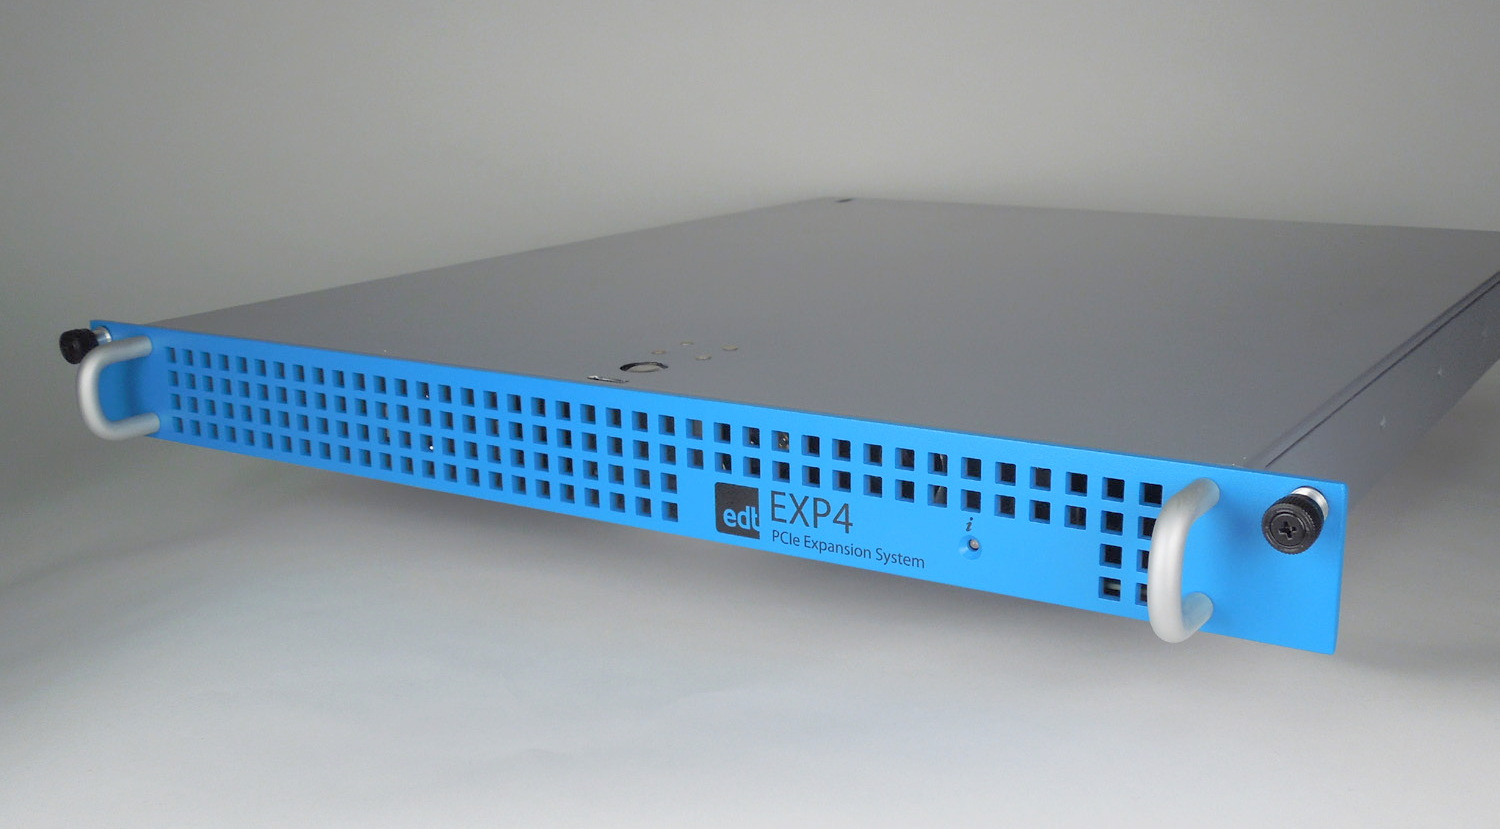 EDT EXP4 – 1U expansion system for PCIe2 x8 – Zerif Technologies Ltd.